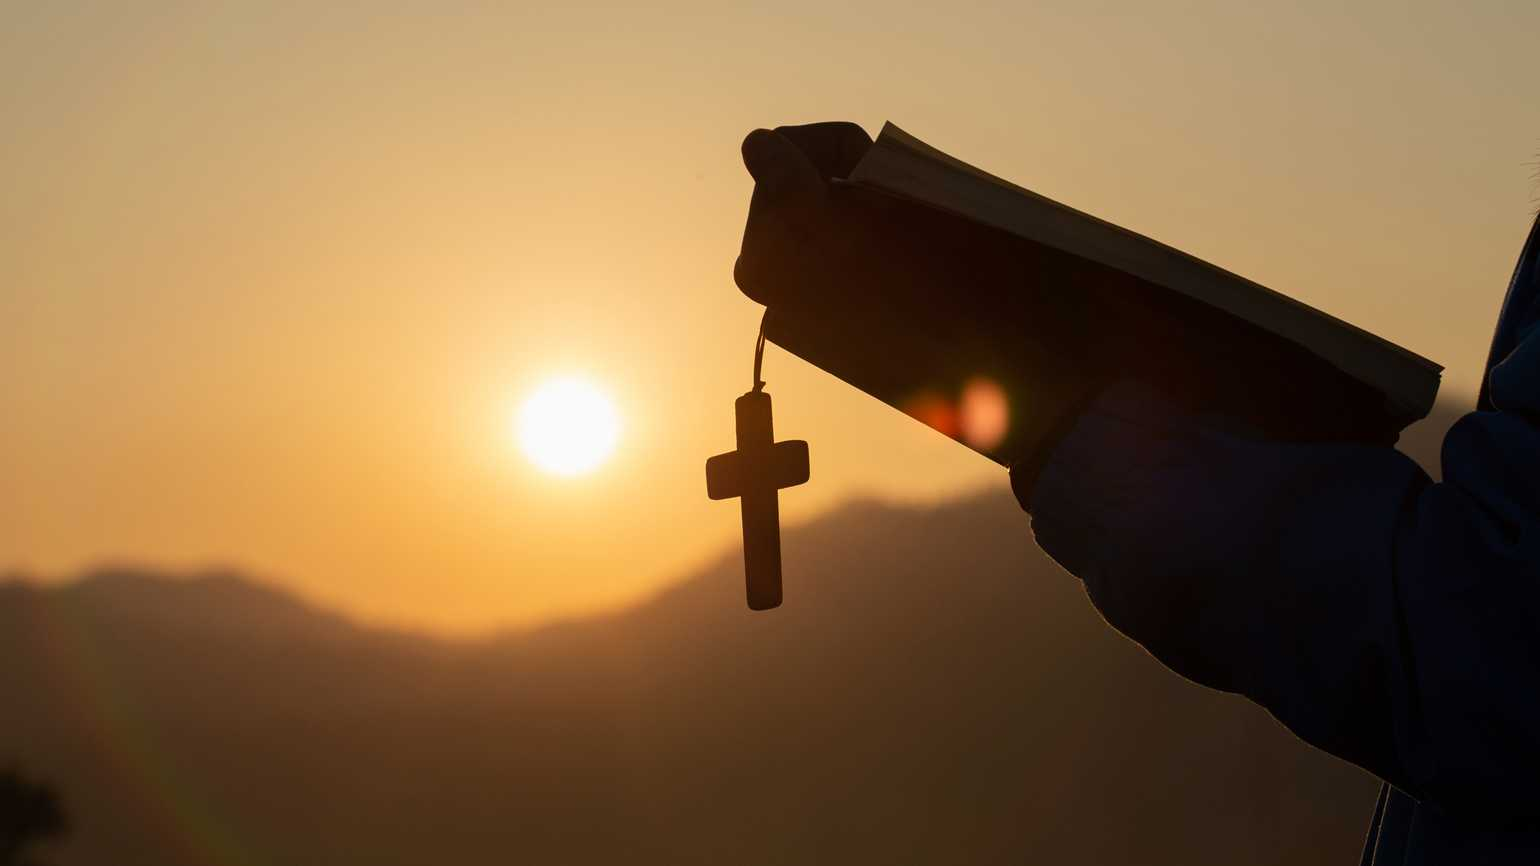 Silhouette of a person with a Bible and Holy Cross.